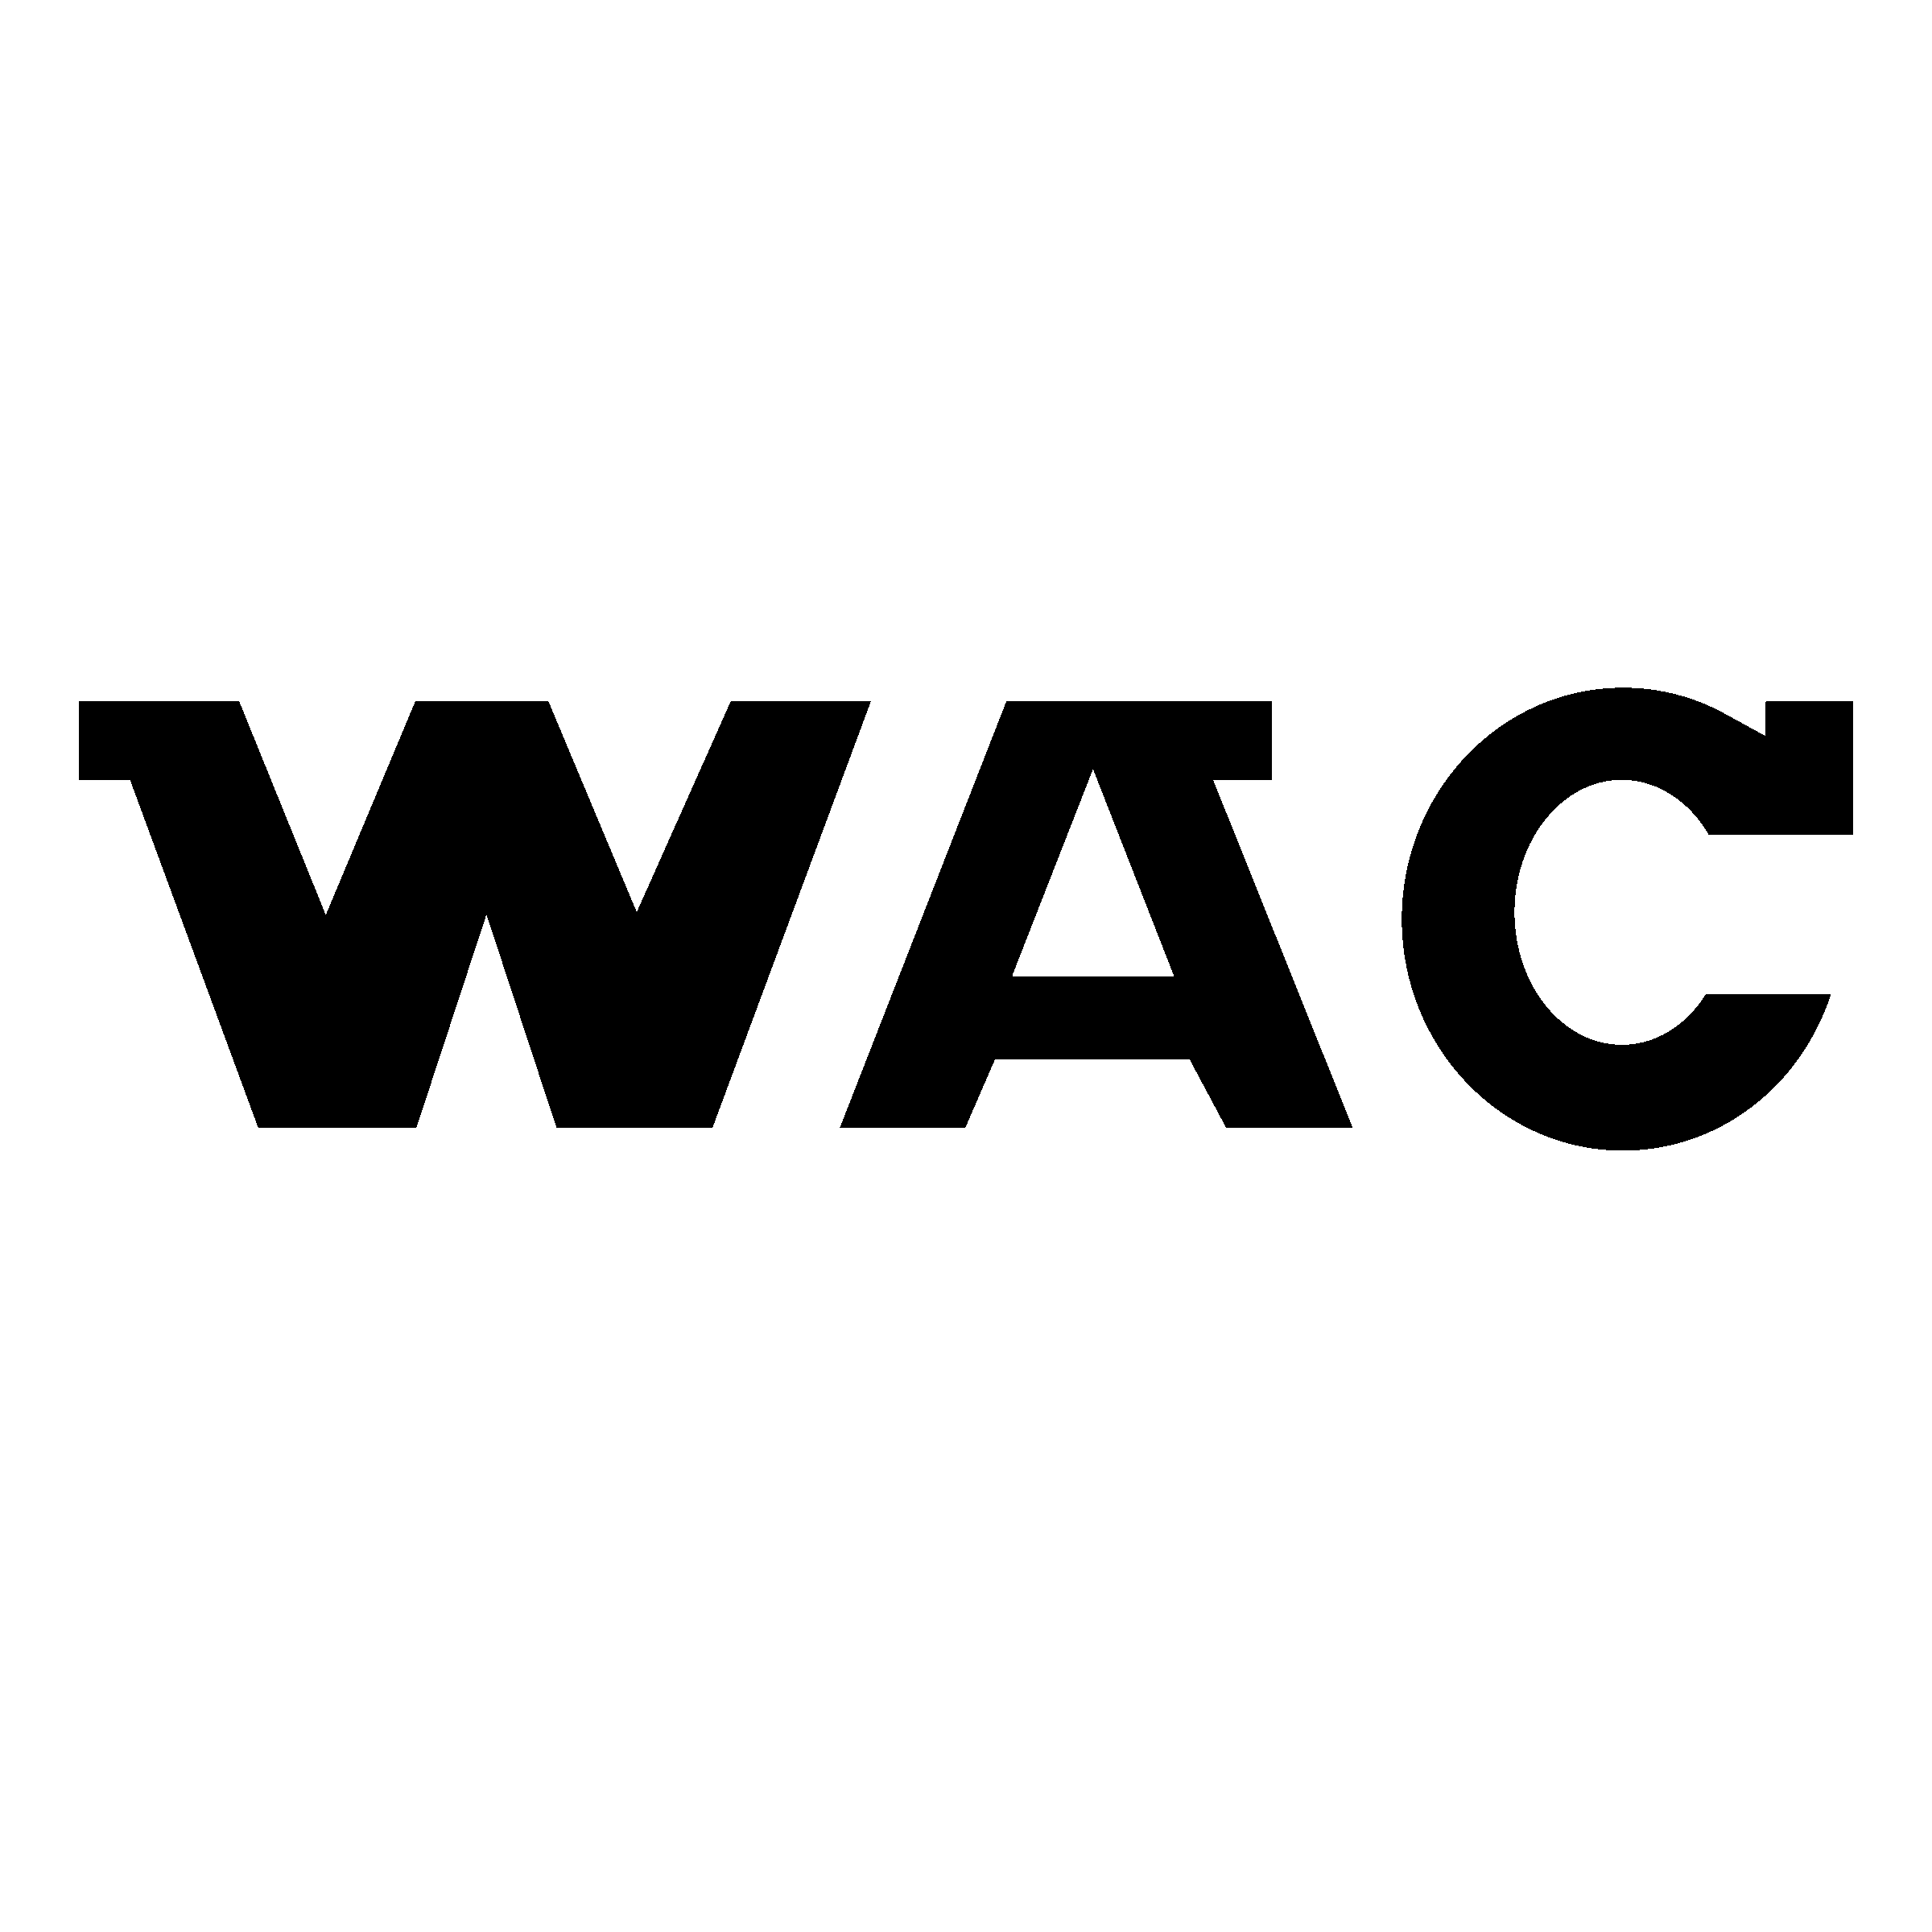 WAC Logo PNG Transparent & SVG Vector.